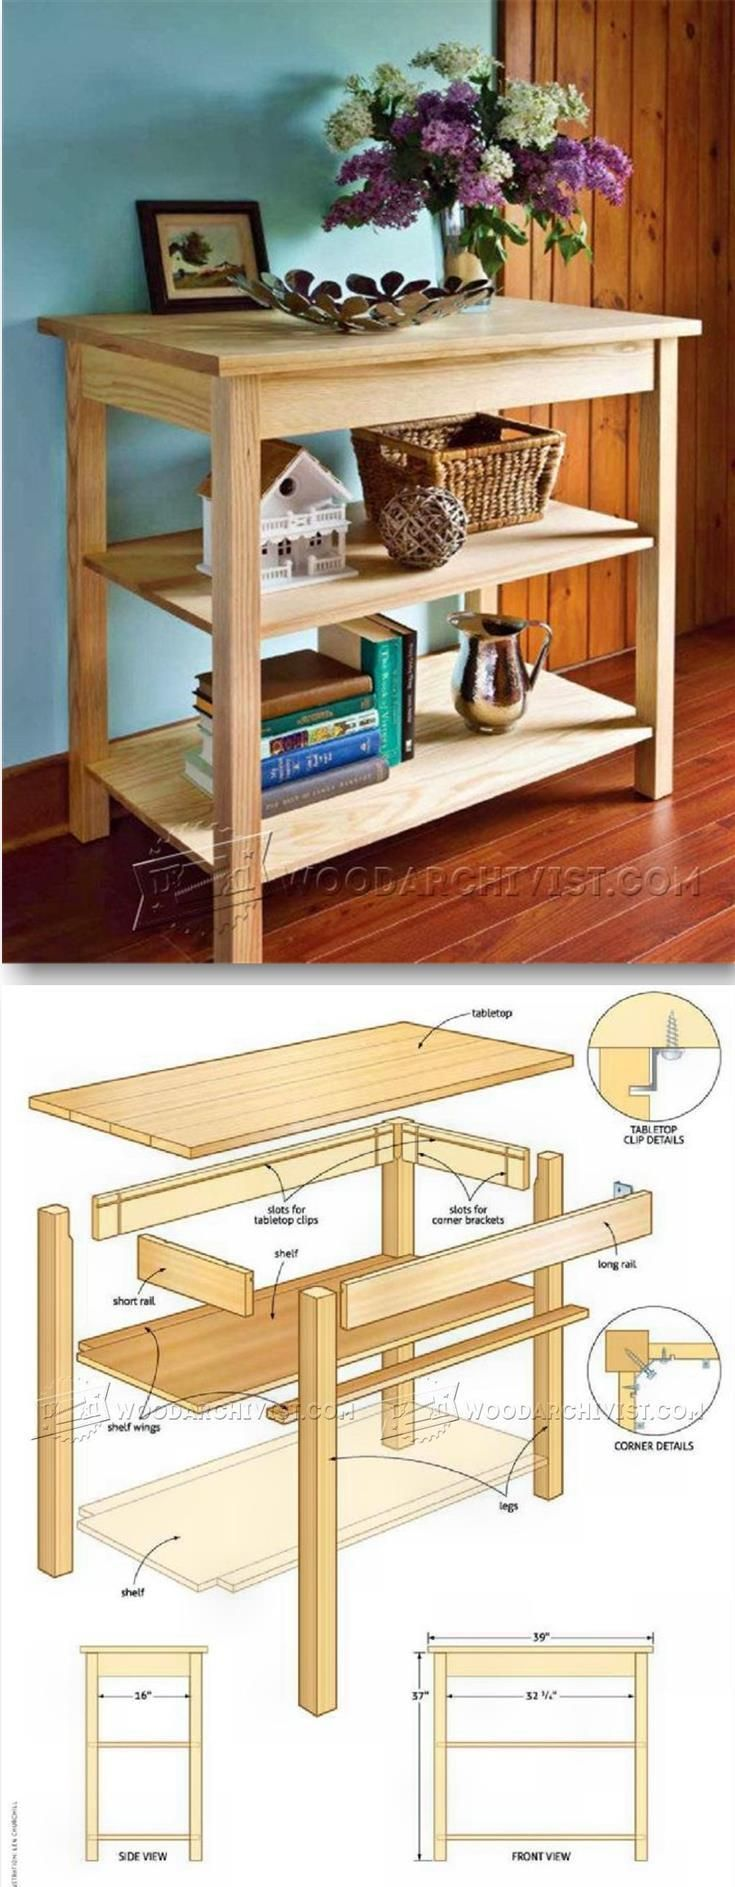 Ash Table Plans - Furniture Plans and Projects - Woodwork, Woodworking, Woodworking Plans, Woodworking Projects